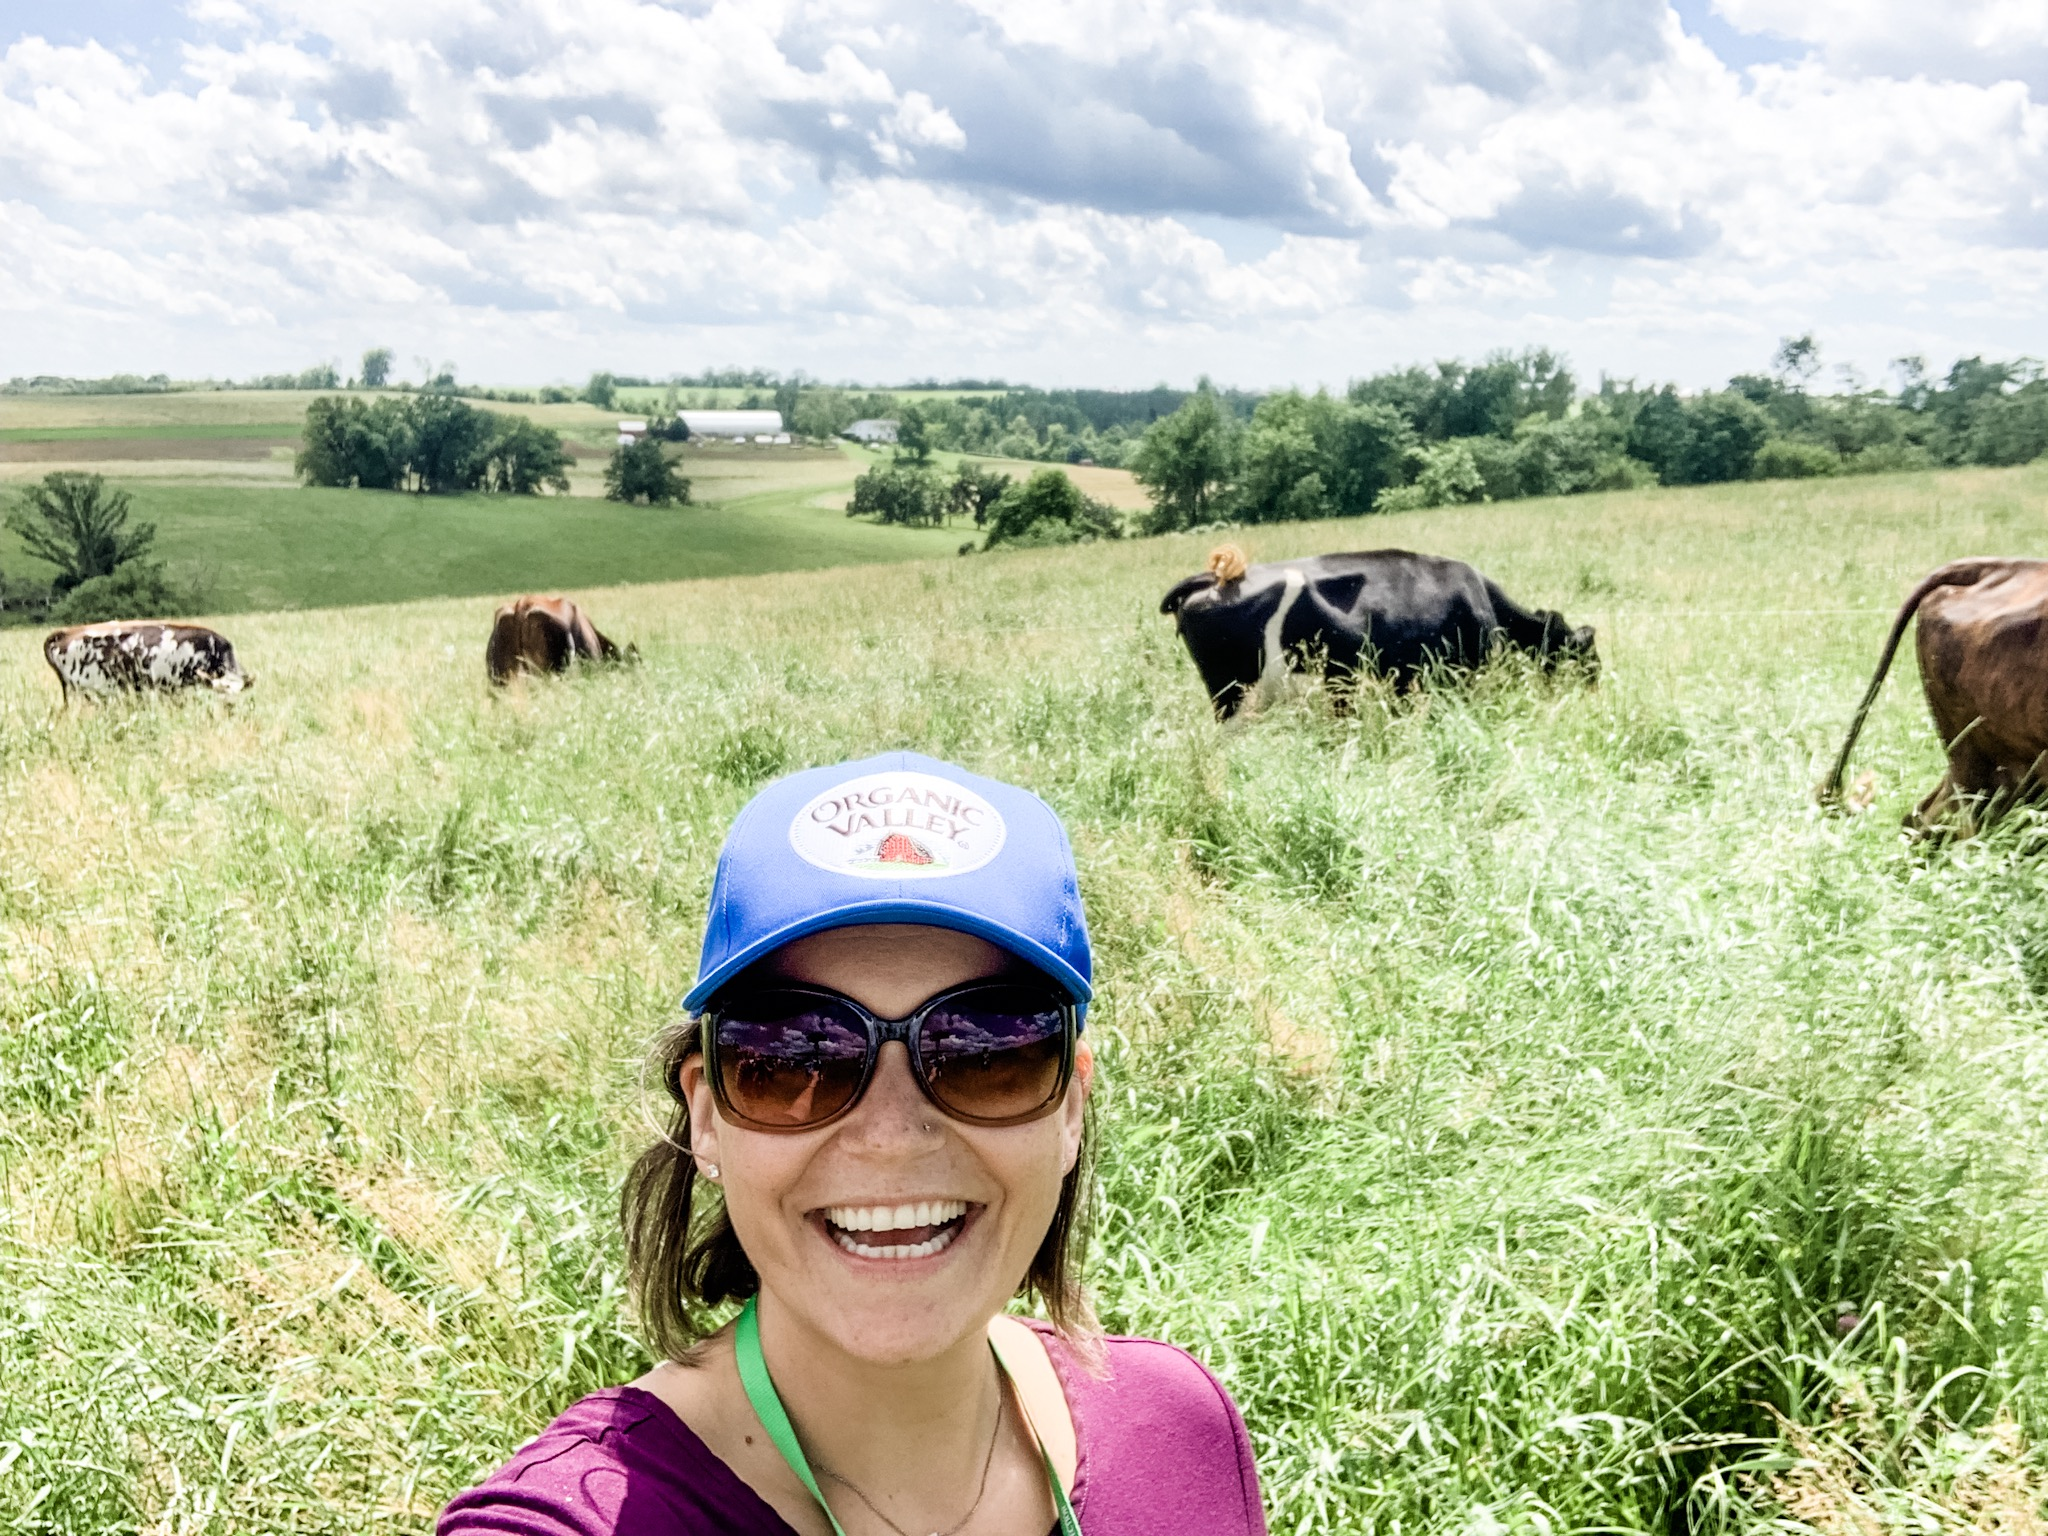 Carolina, wearing a blue Organic Valley hat and sunglasses, takes a selfie in front of grazing cows and a rolling landscape.